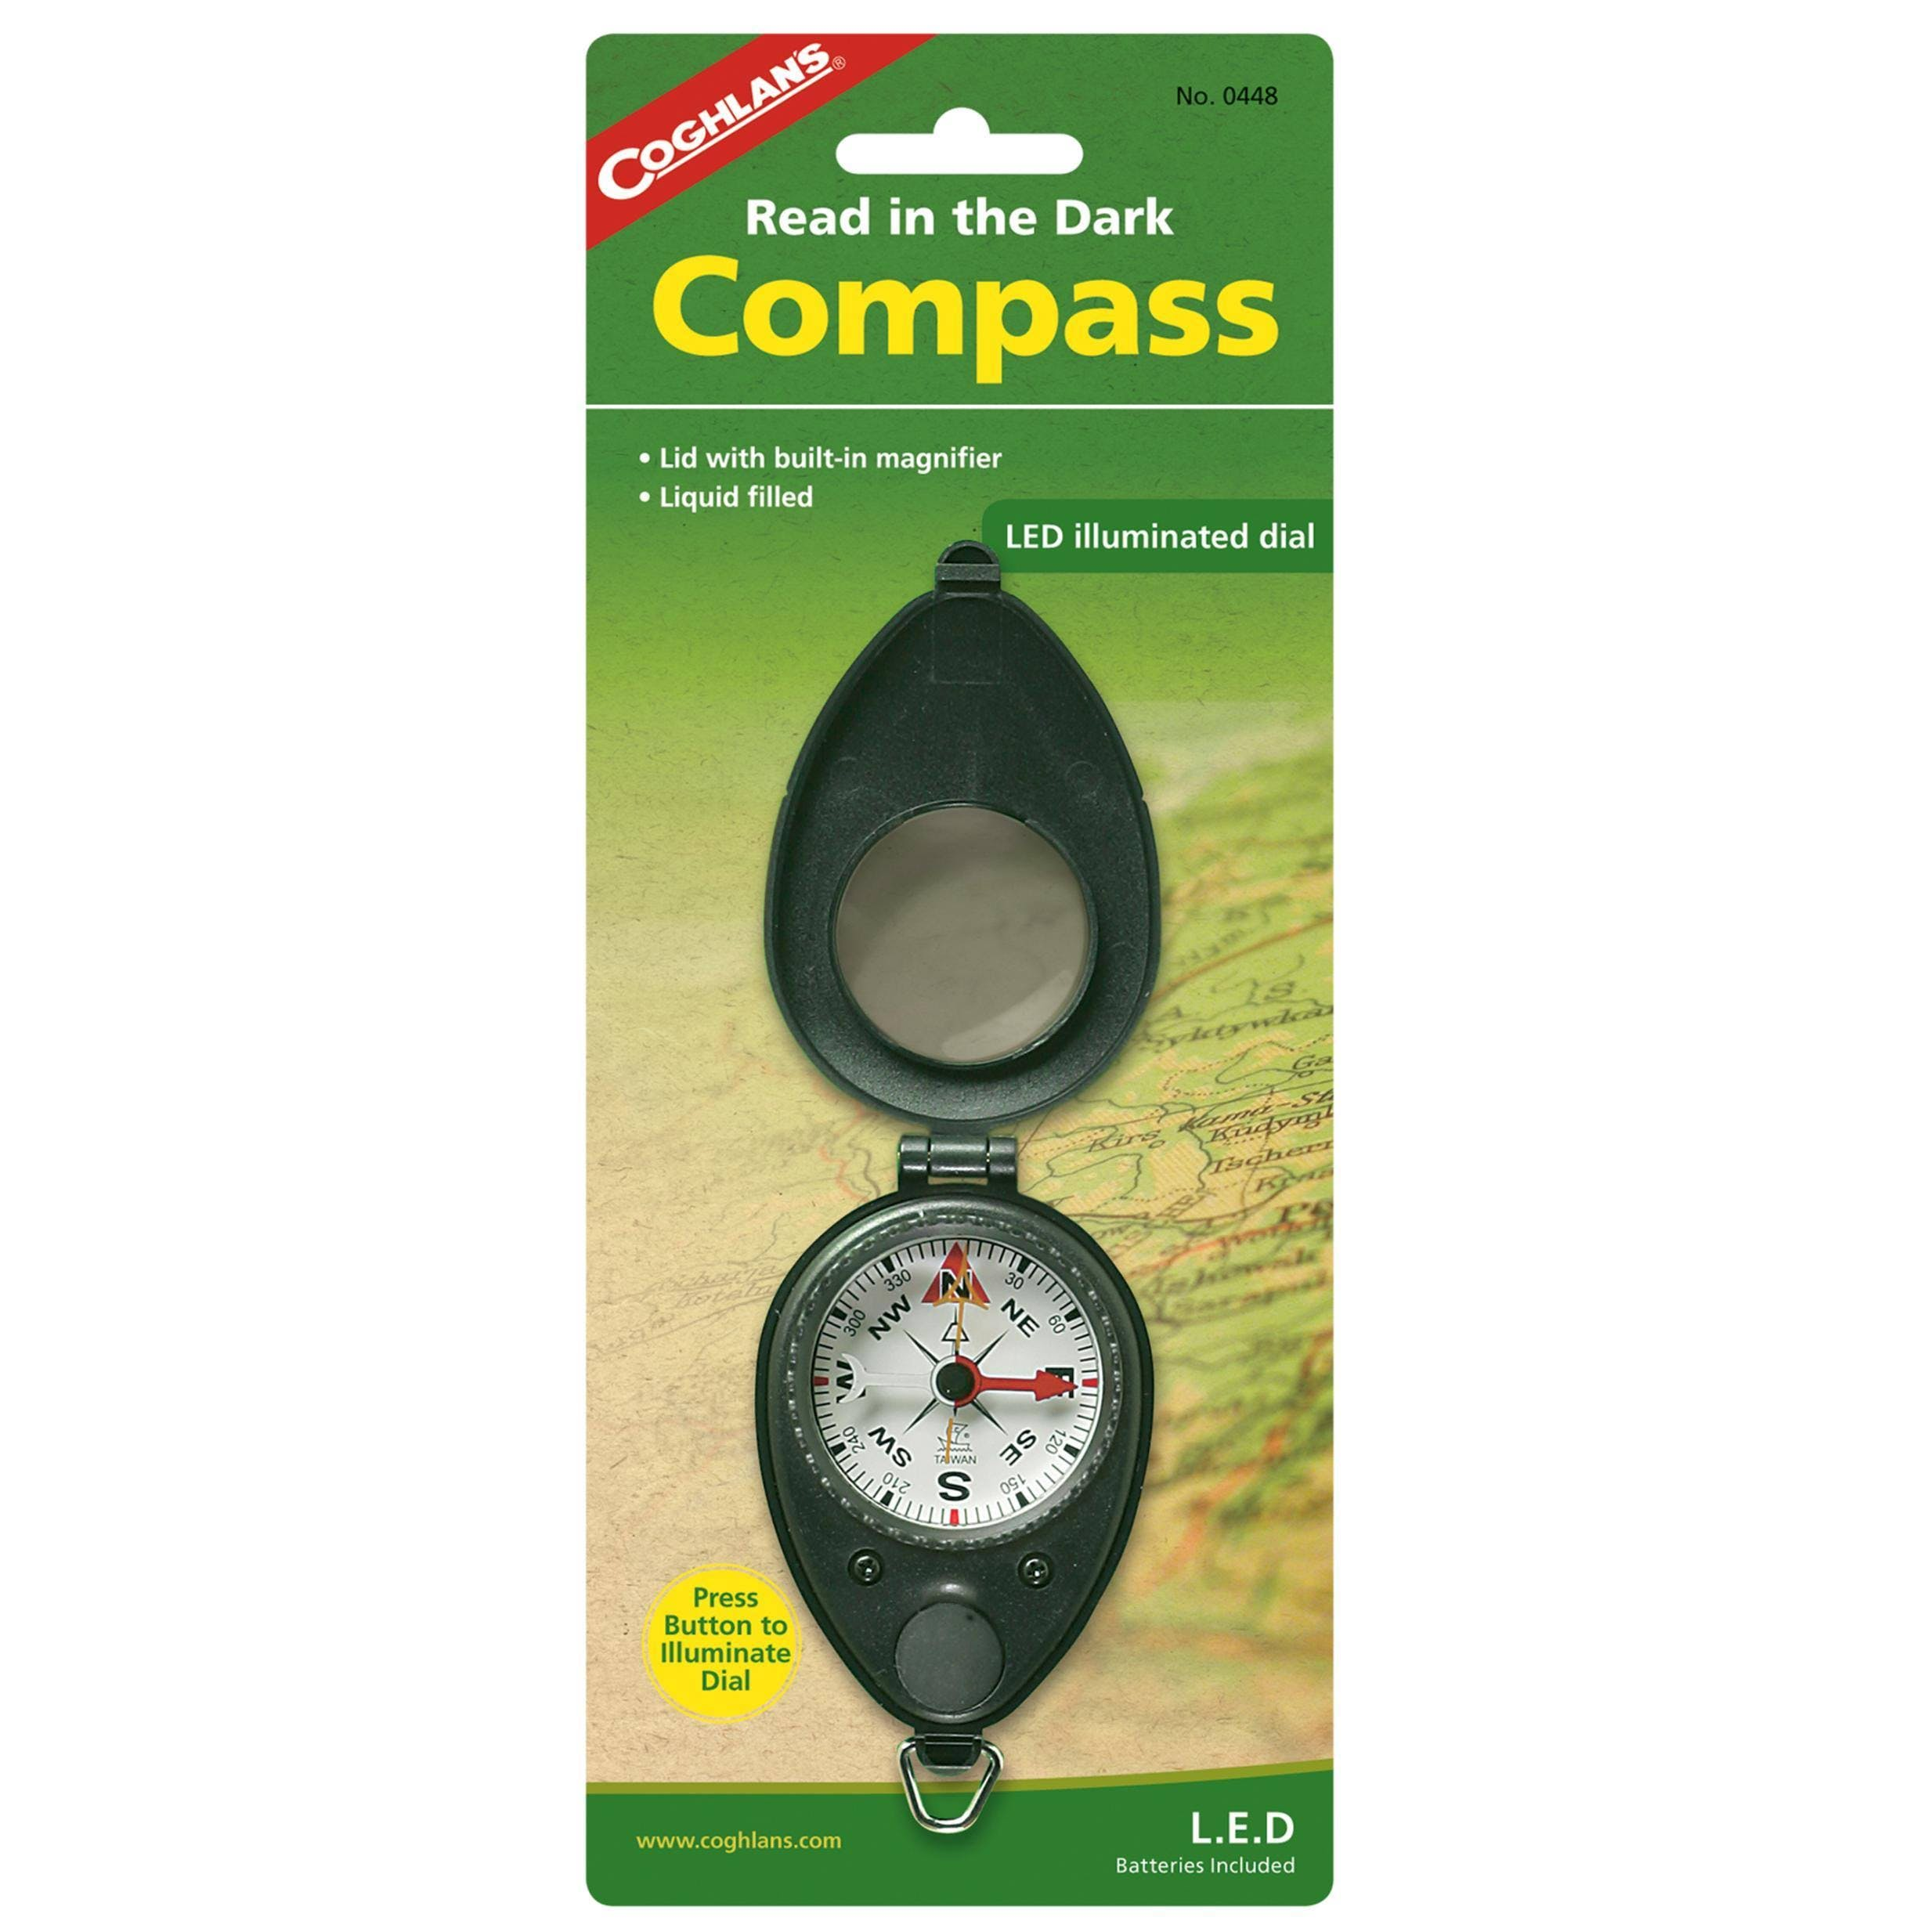 Coghlans Compass with LED